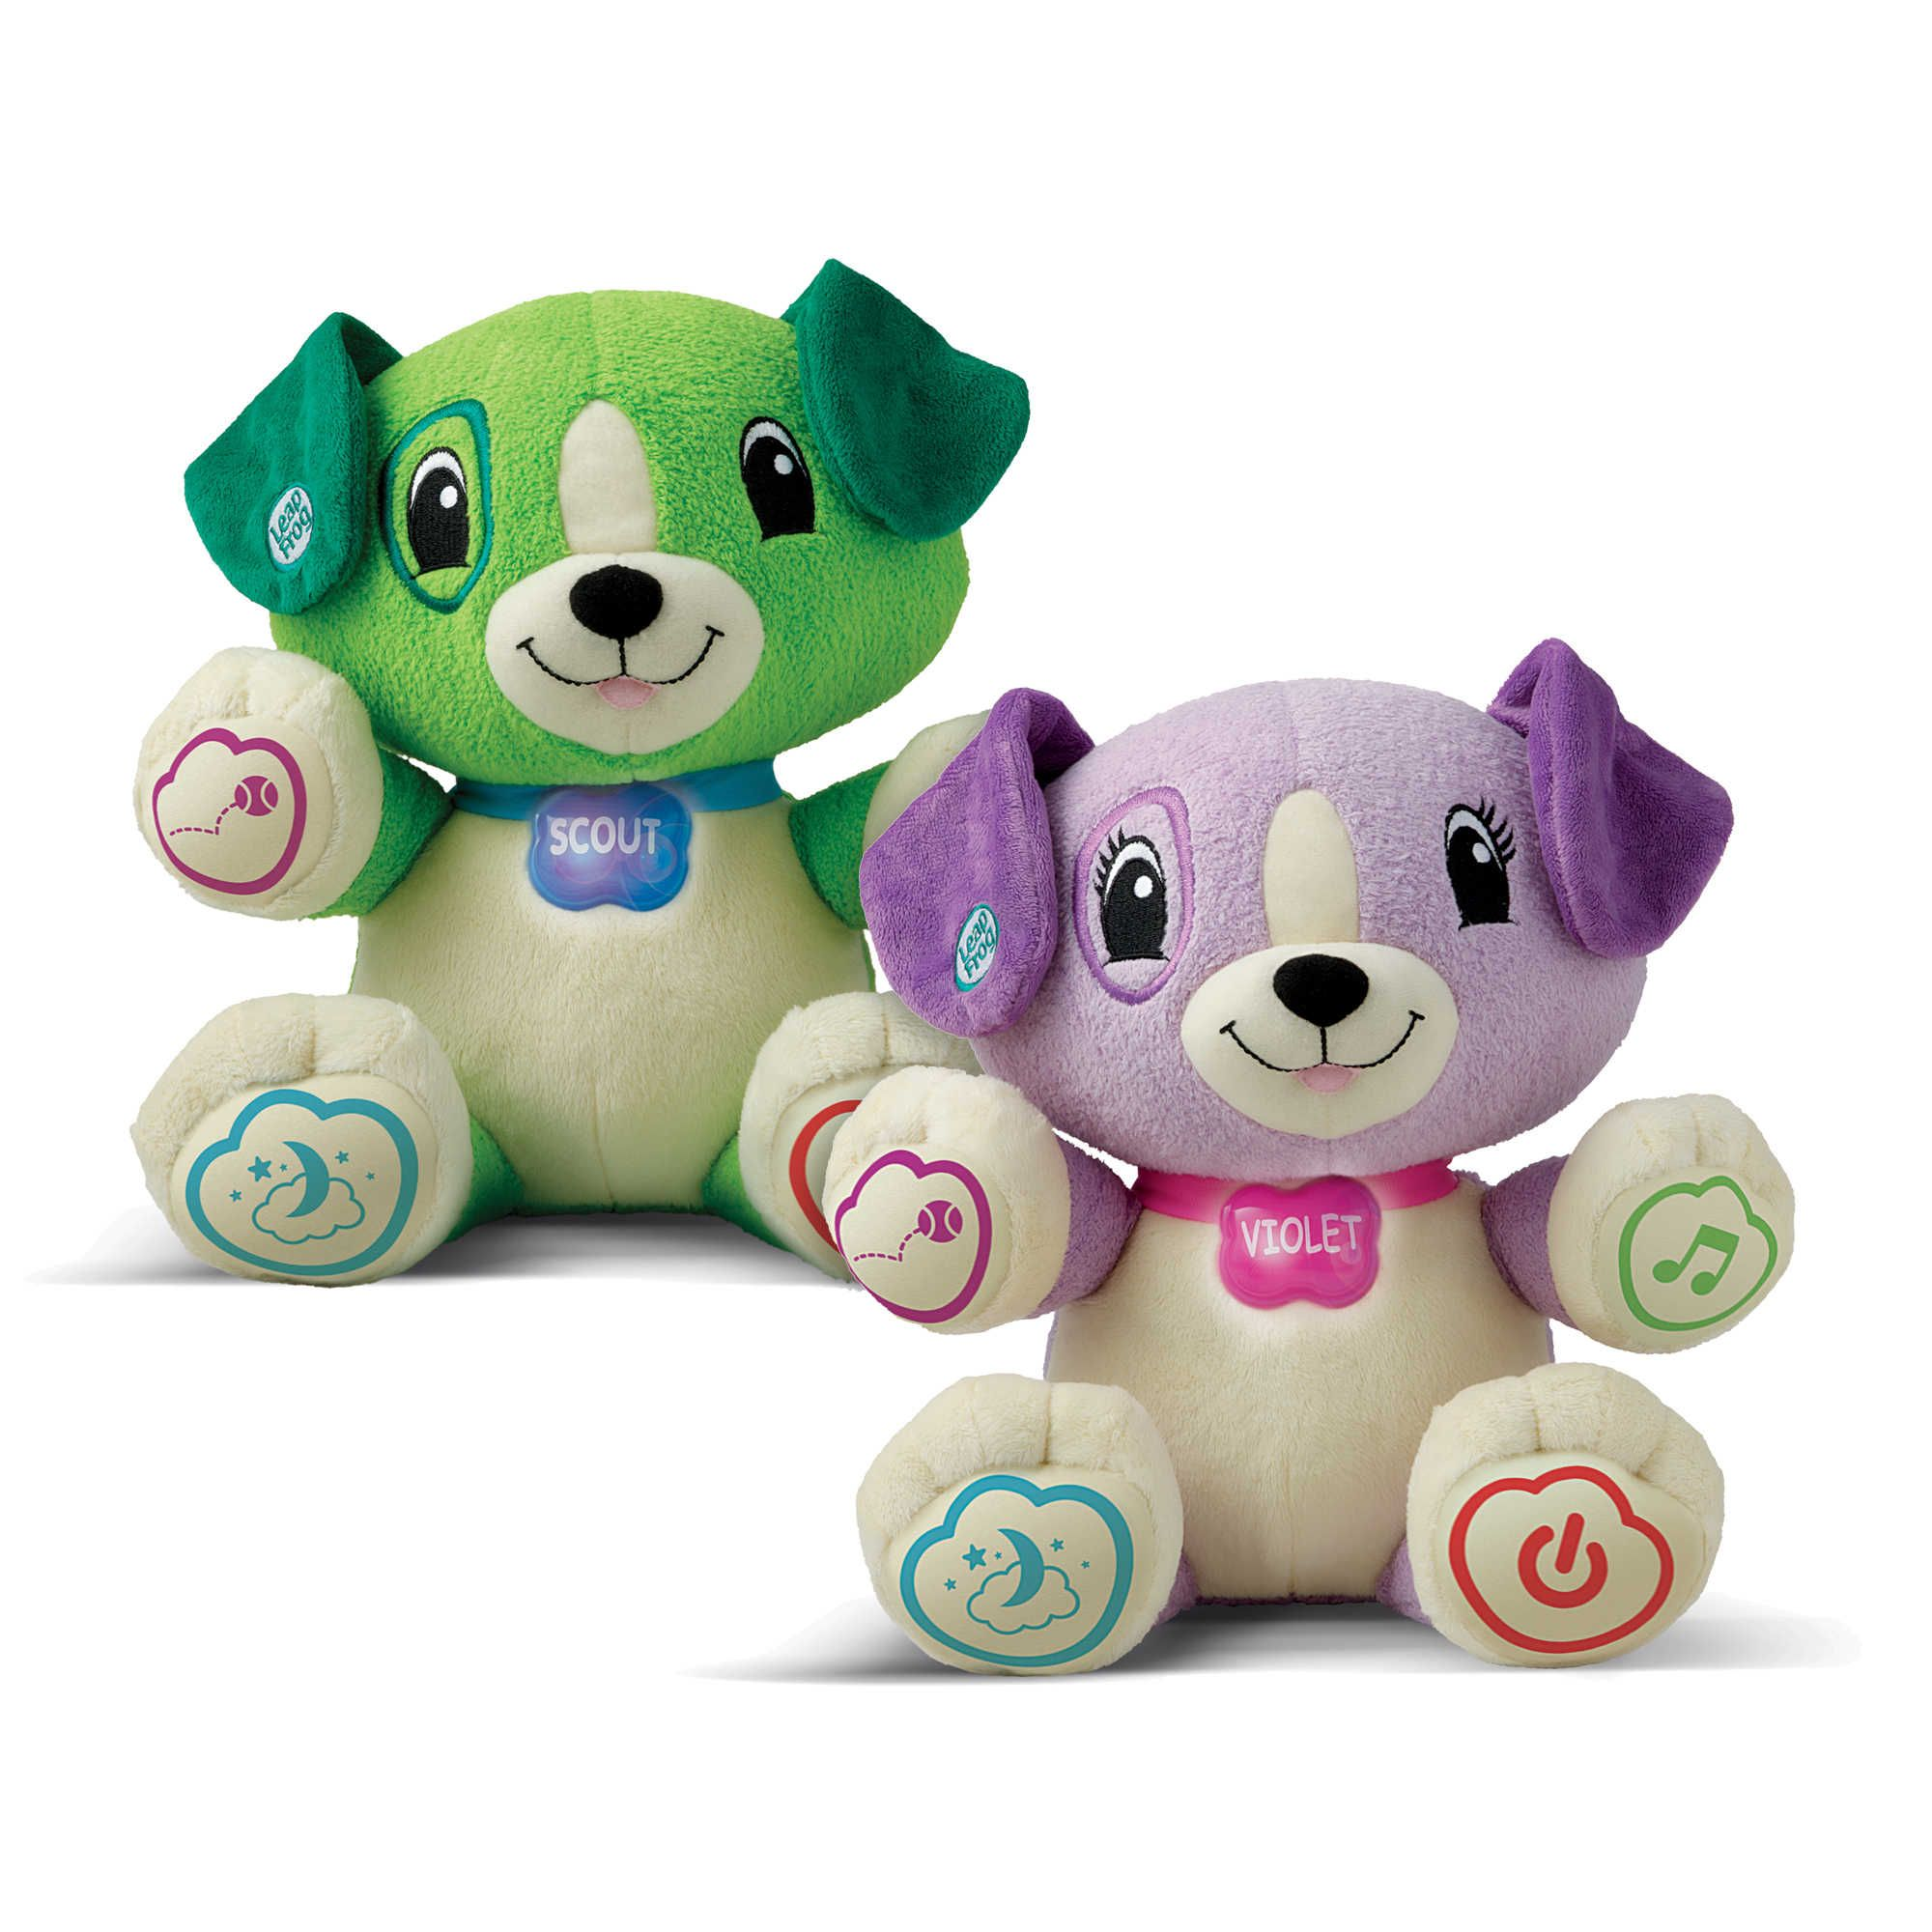 LeapFrog My Pal Scout or My Pal Violet Personalized Plush